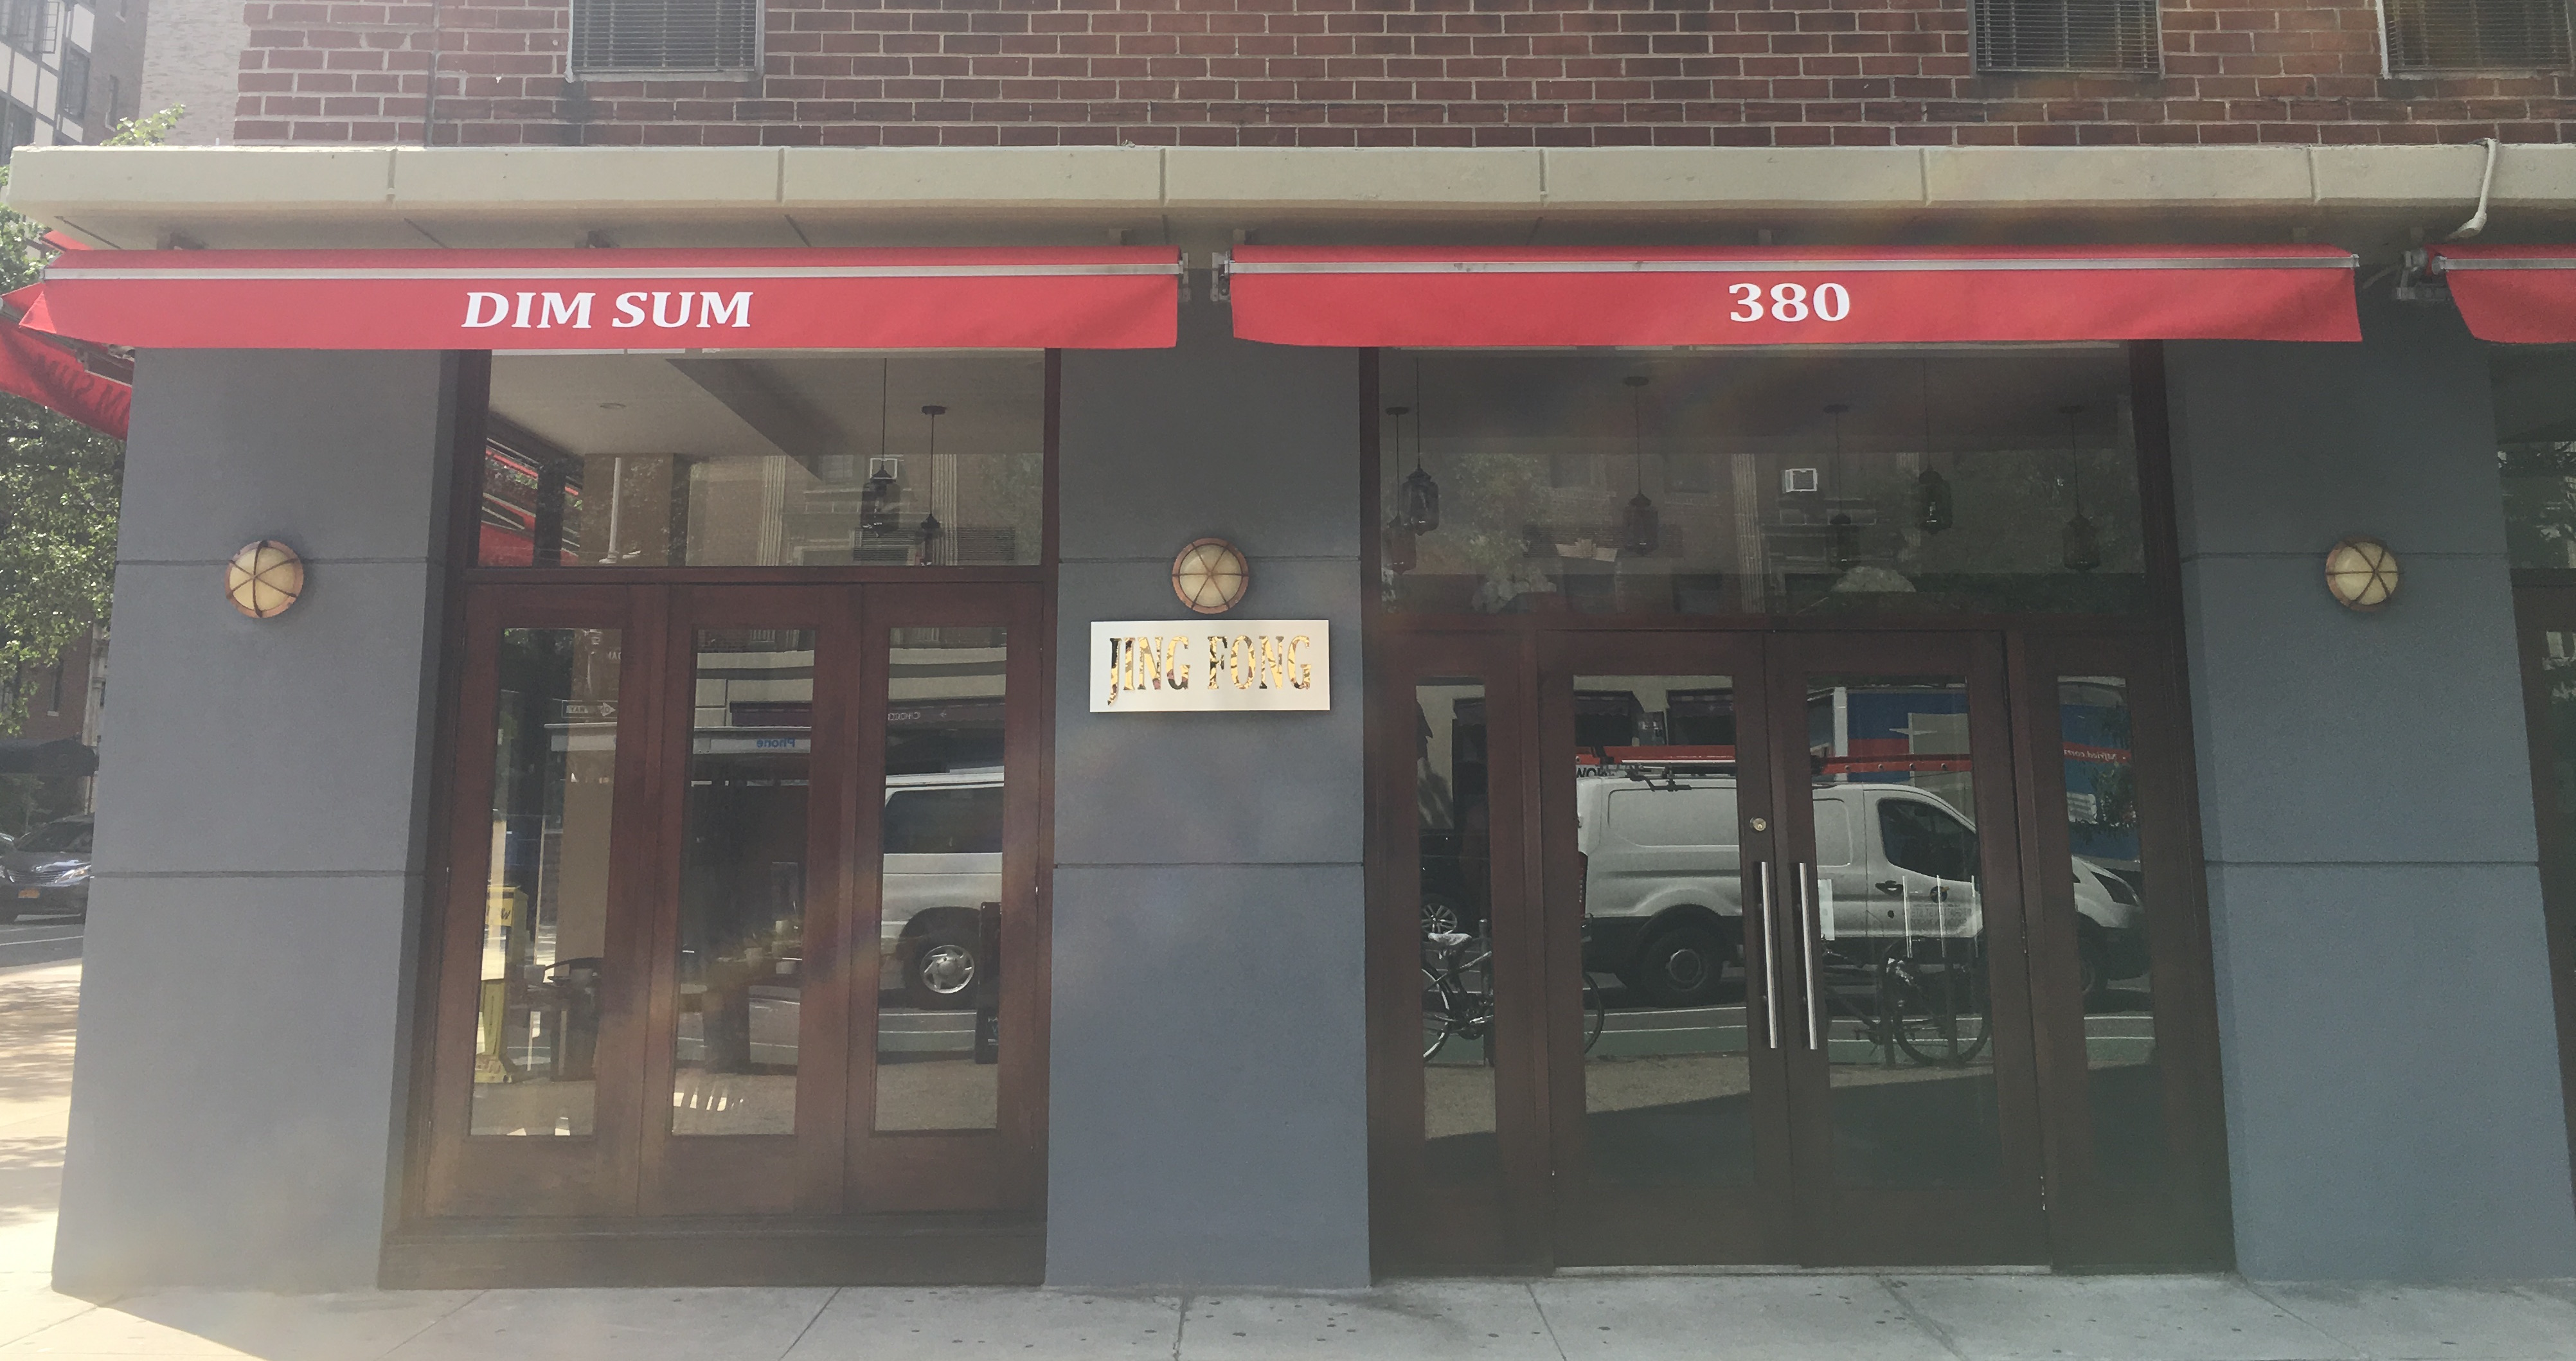 New Dim Sum Spot on the UWS